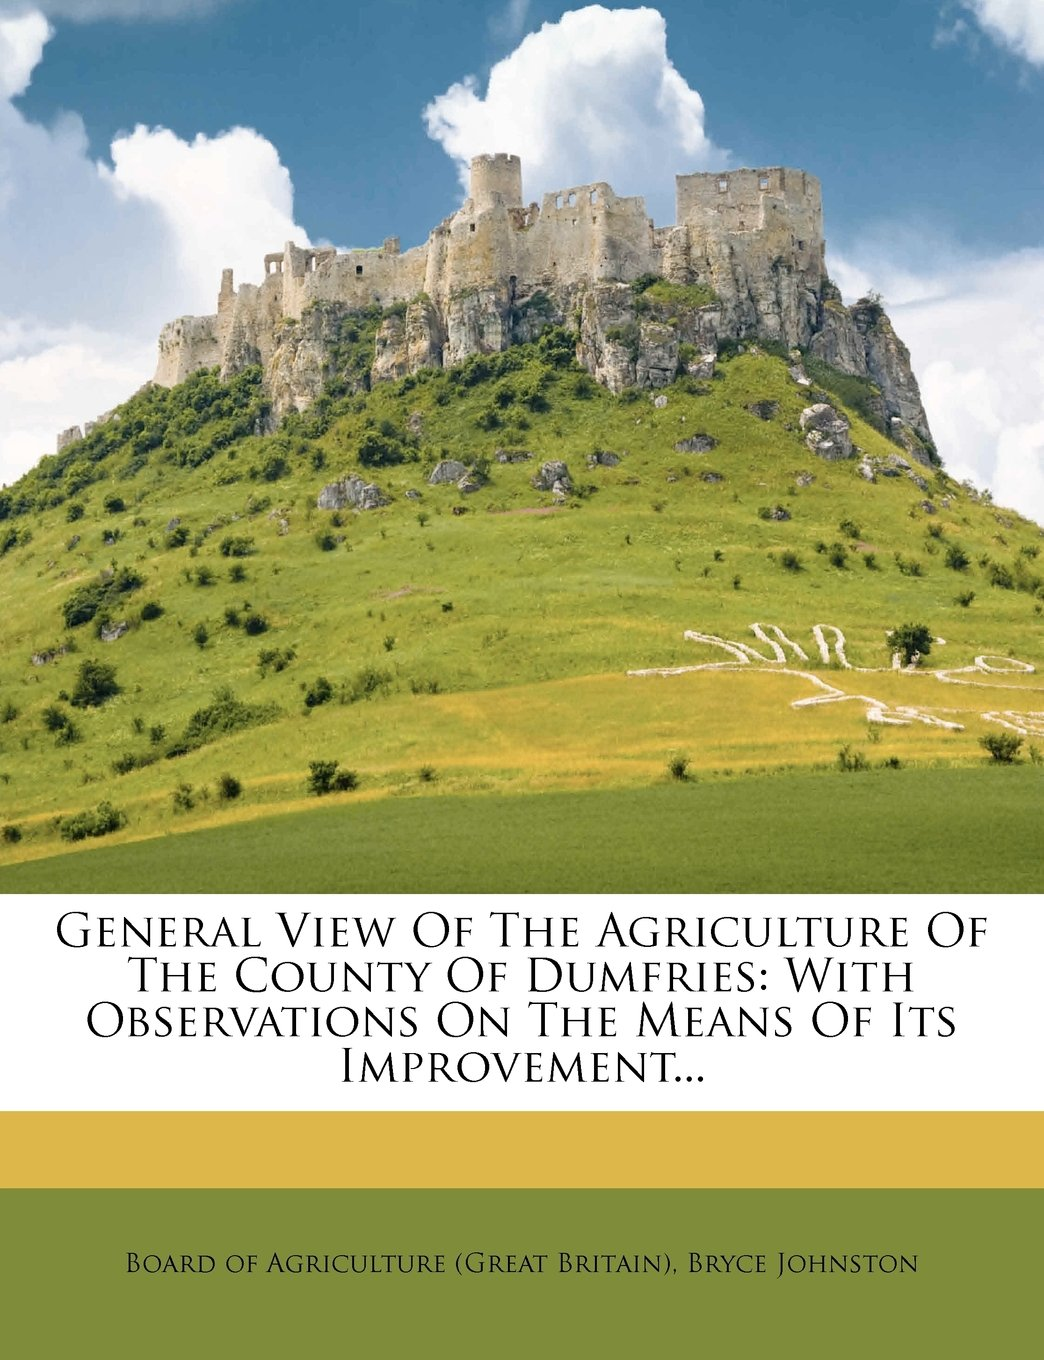 Download General View of the Agriculture of the County of Dumfries: With Observations on the Means of Its Improvement... ebook